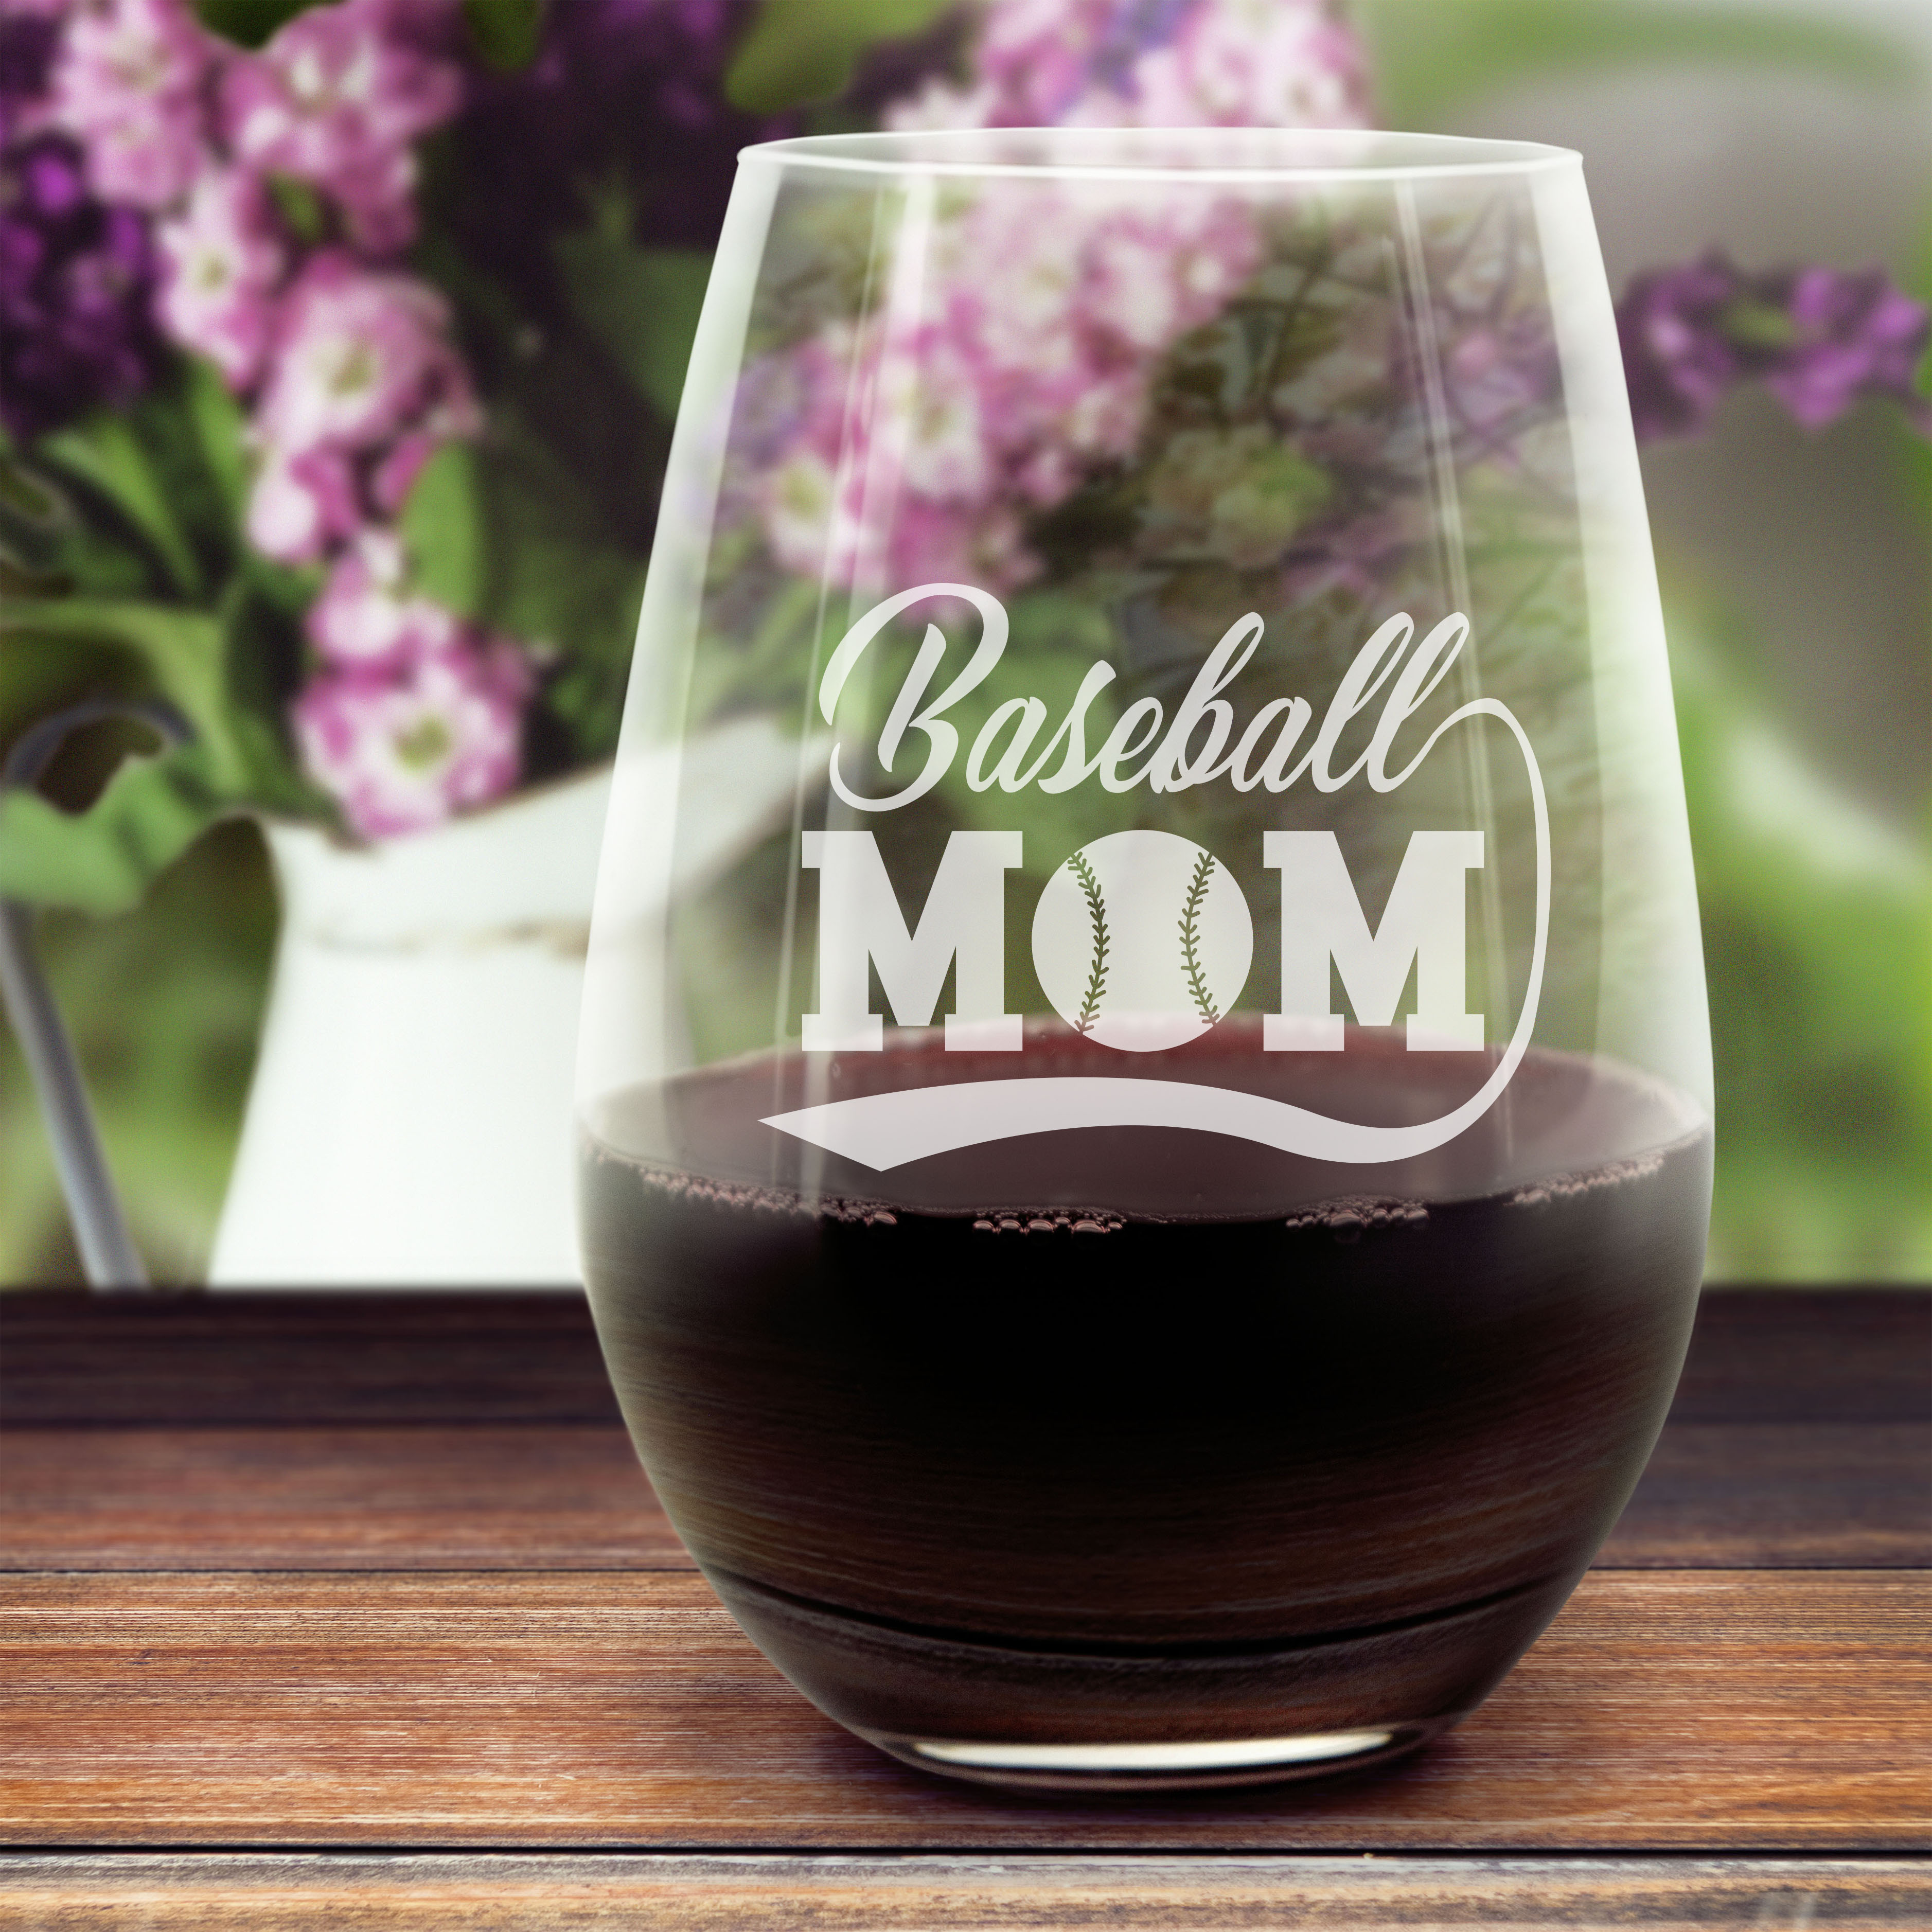 40c1a06f0d5 Personalized Wine Glasses - Personalized by Kate